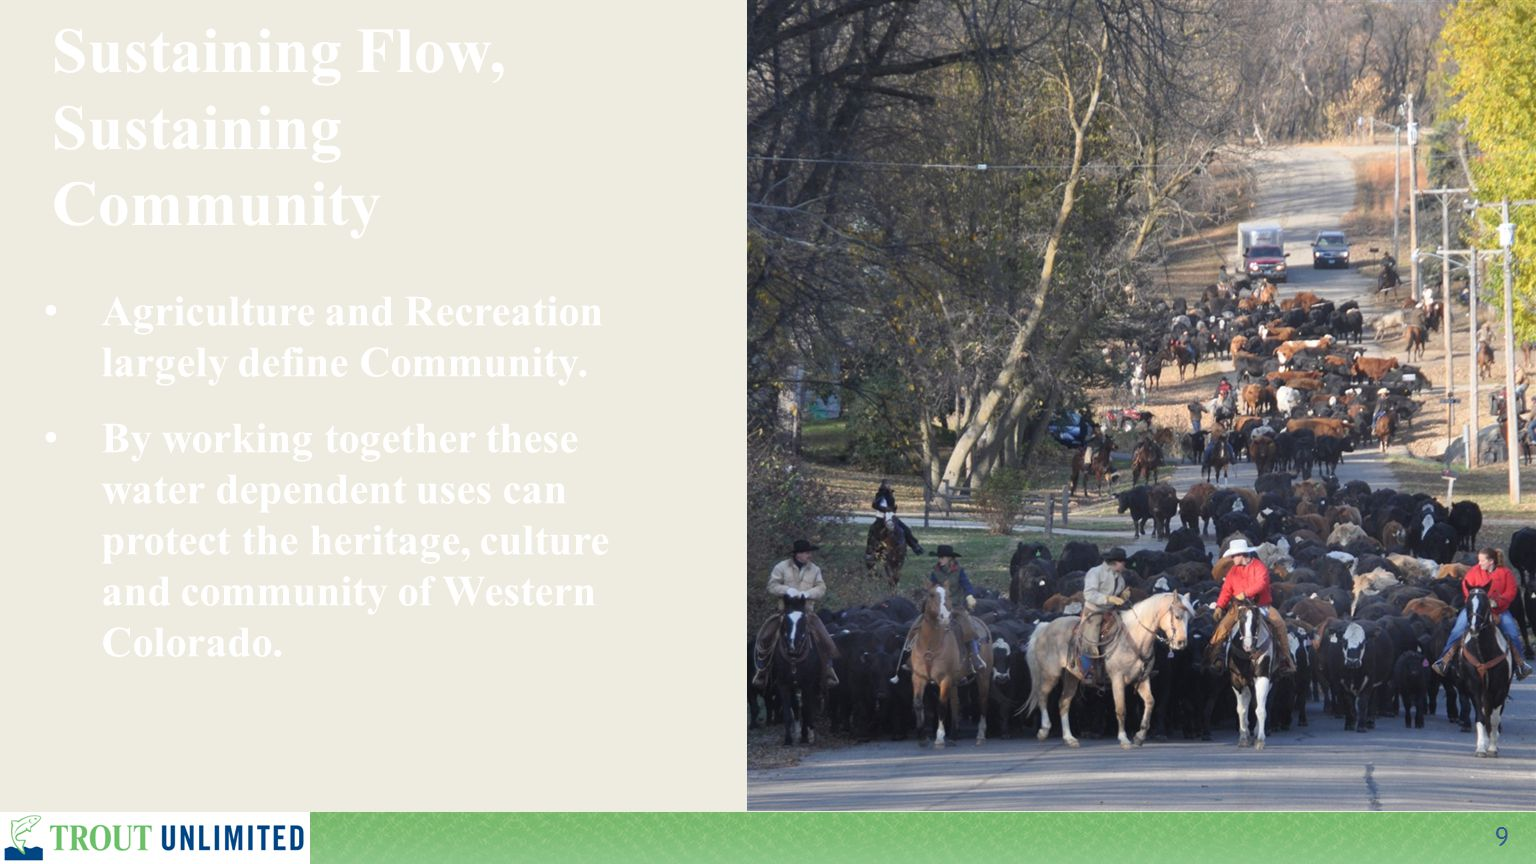 9 Sustaining Flow, Sustaining Community Agriculture and Recreation largely define Community. By working together these water dependent uses can protec